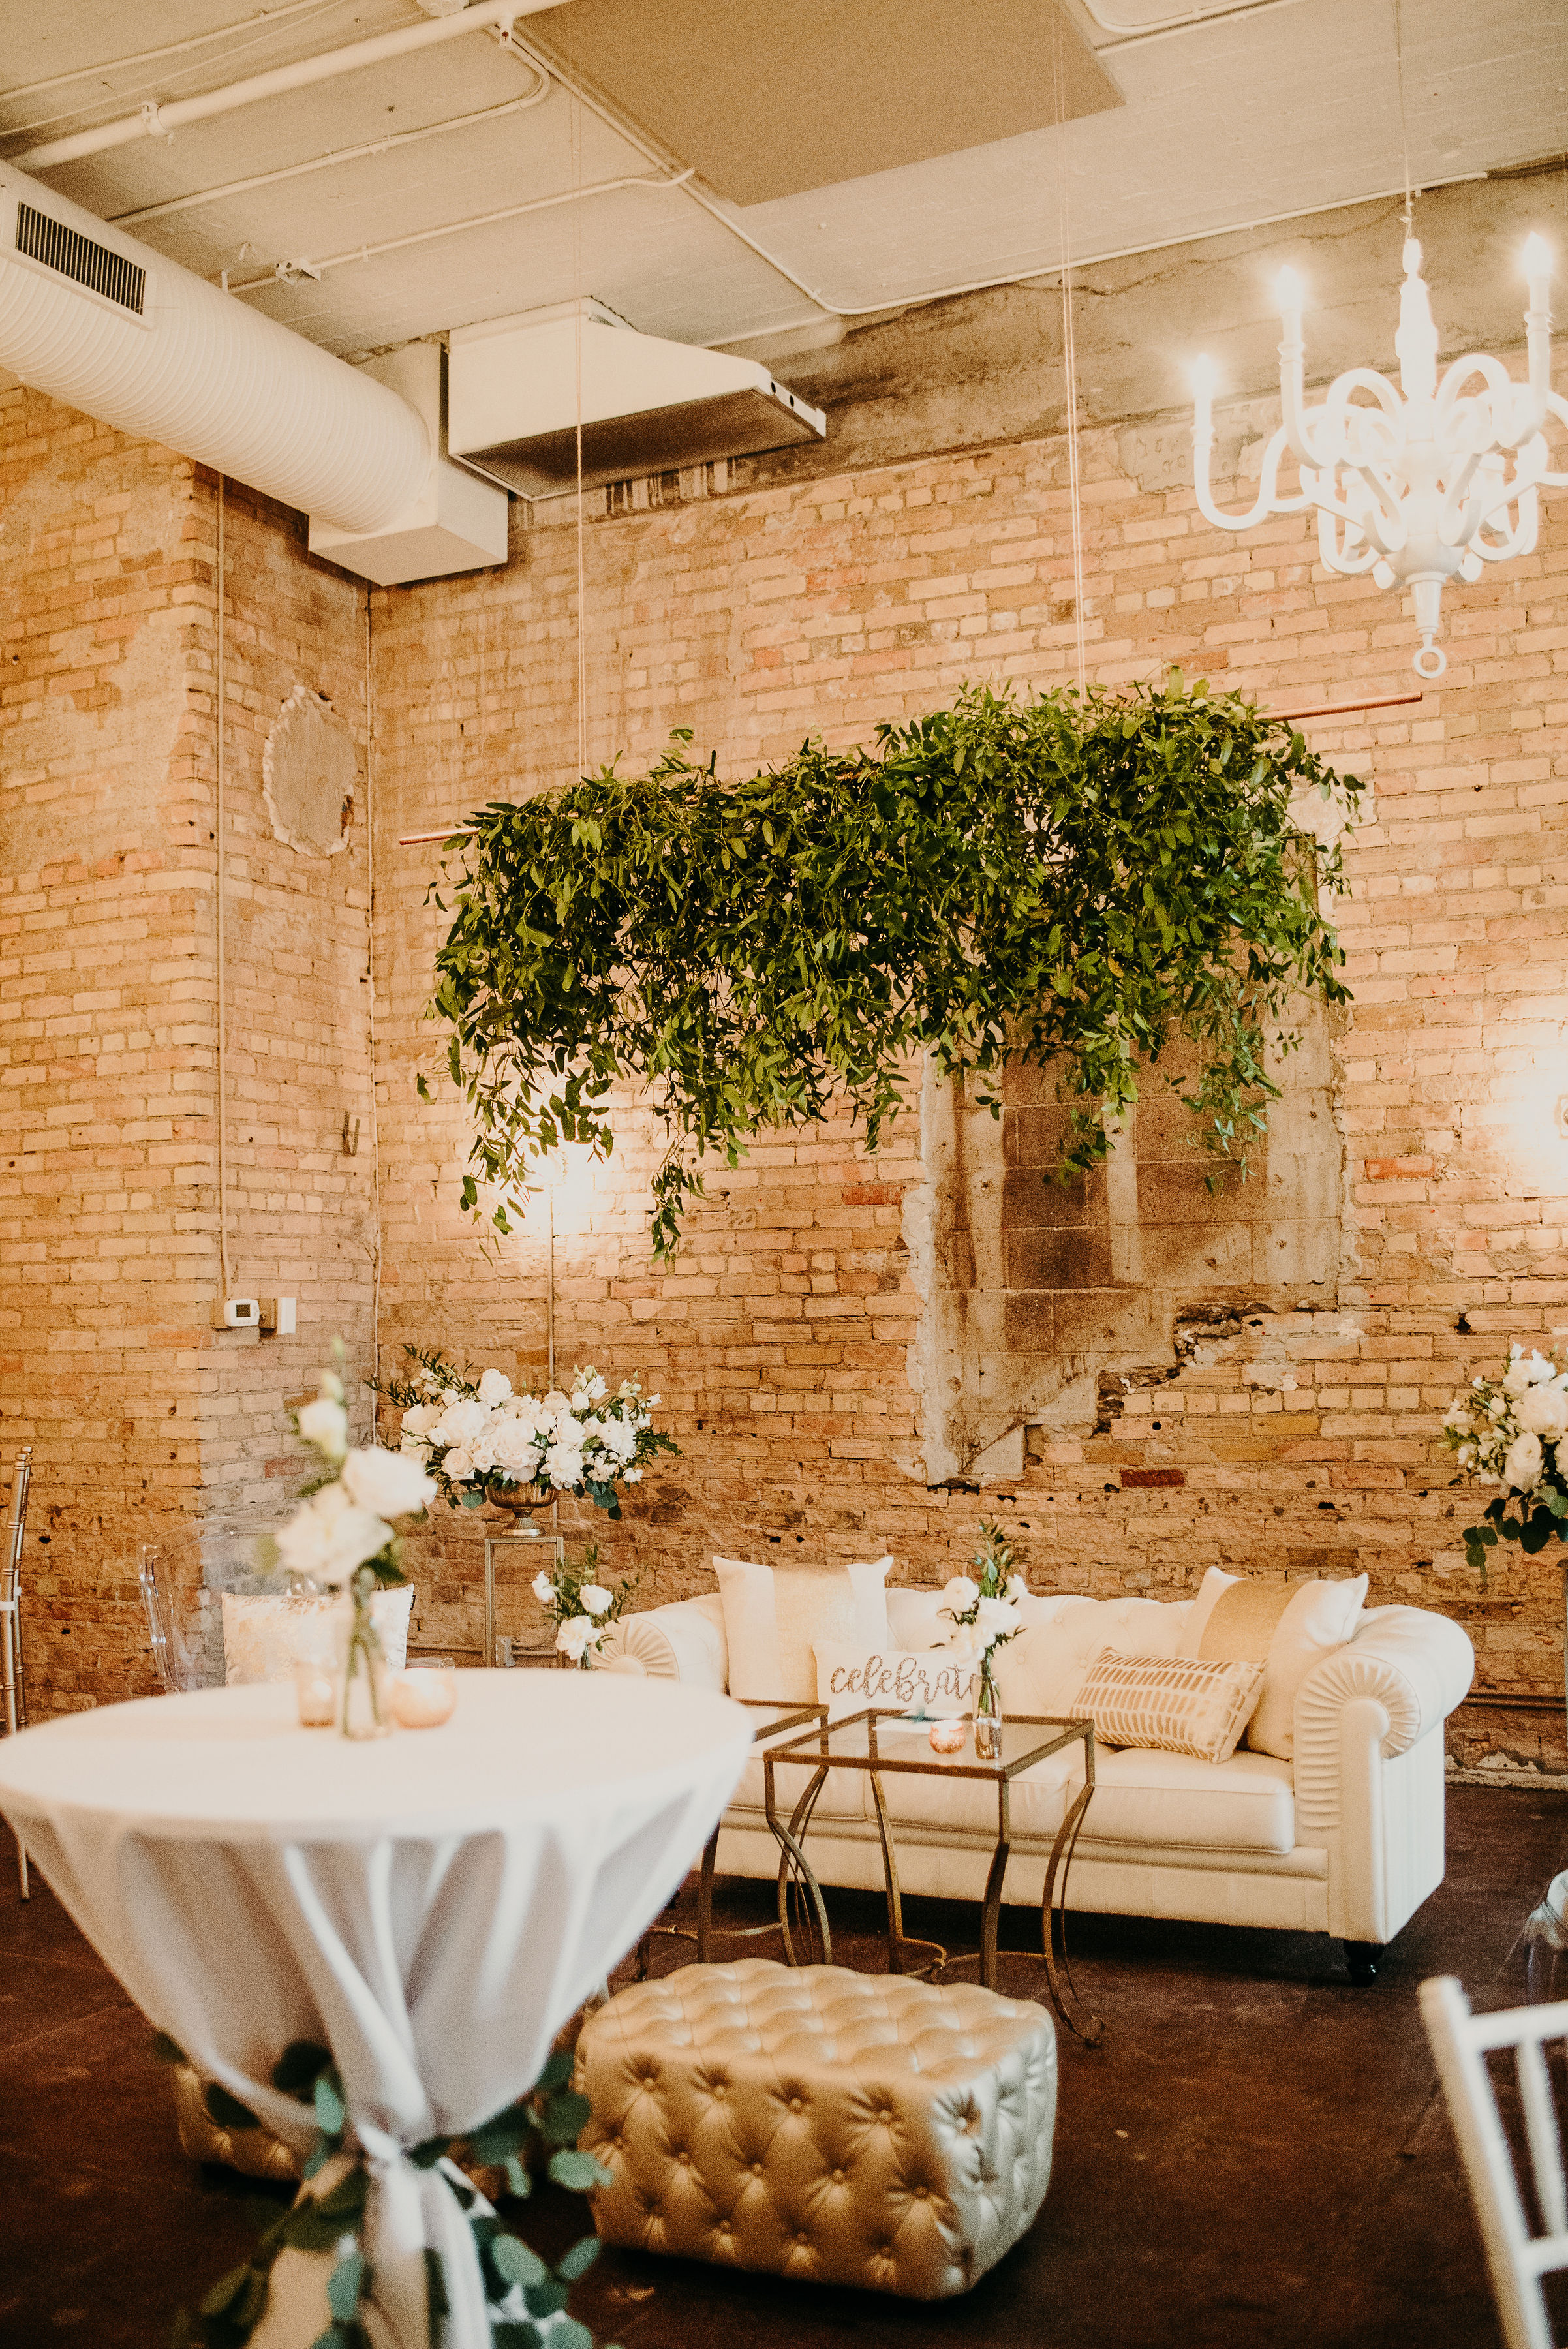 Linen Effects provided beautiful linens along with this amazing lounge moment for Lara + Dominic's  Loring Social  wedding, talk about more than just linens!  Photo / /  Ali Leigh Photo